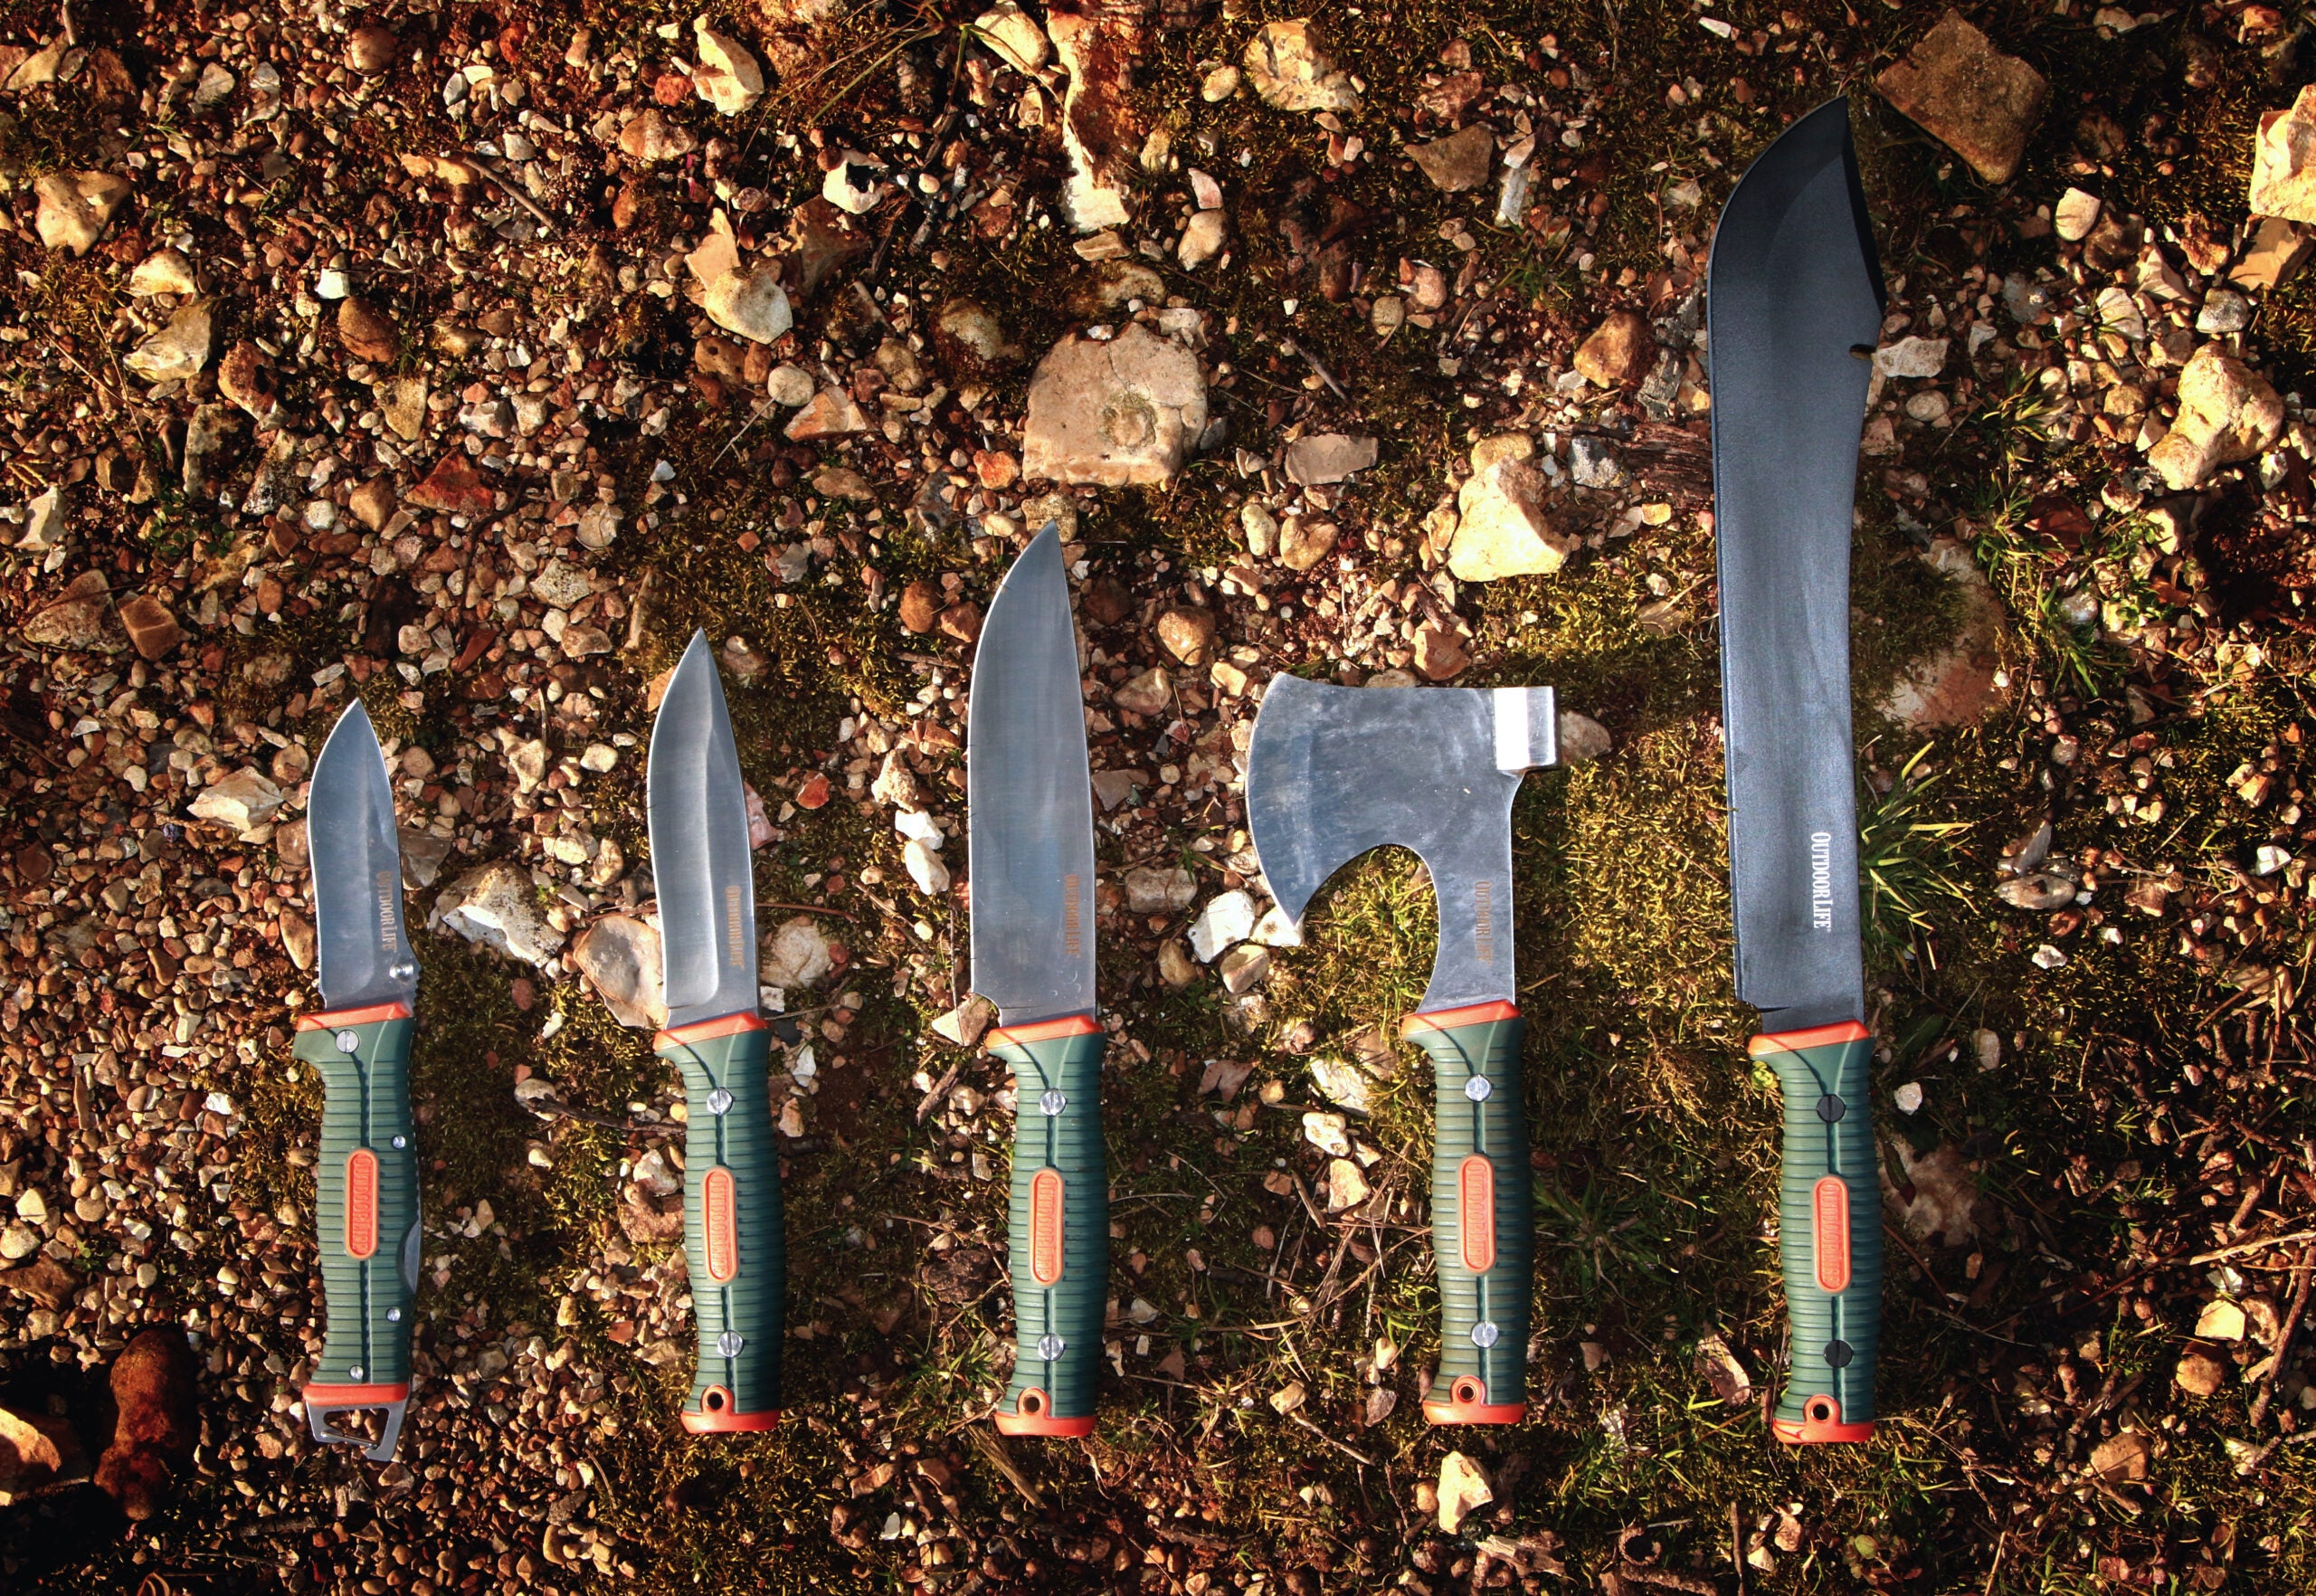 A row of Outdoor Life brand camping tools and knives, on a gravel and moss background.